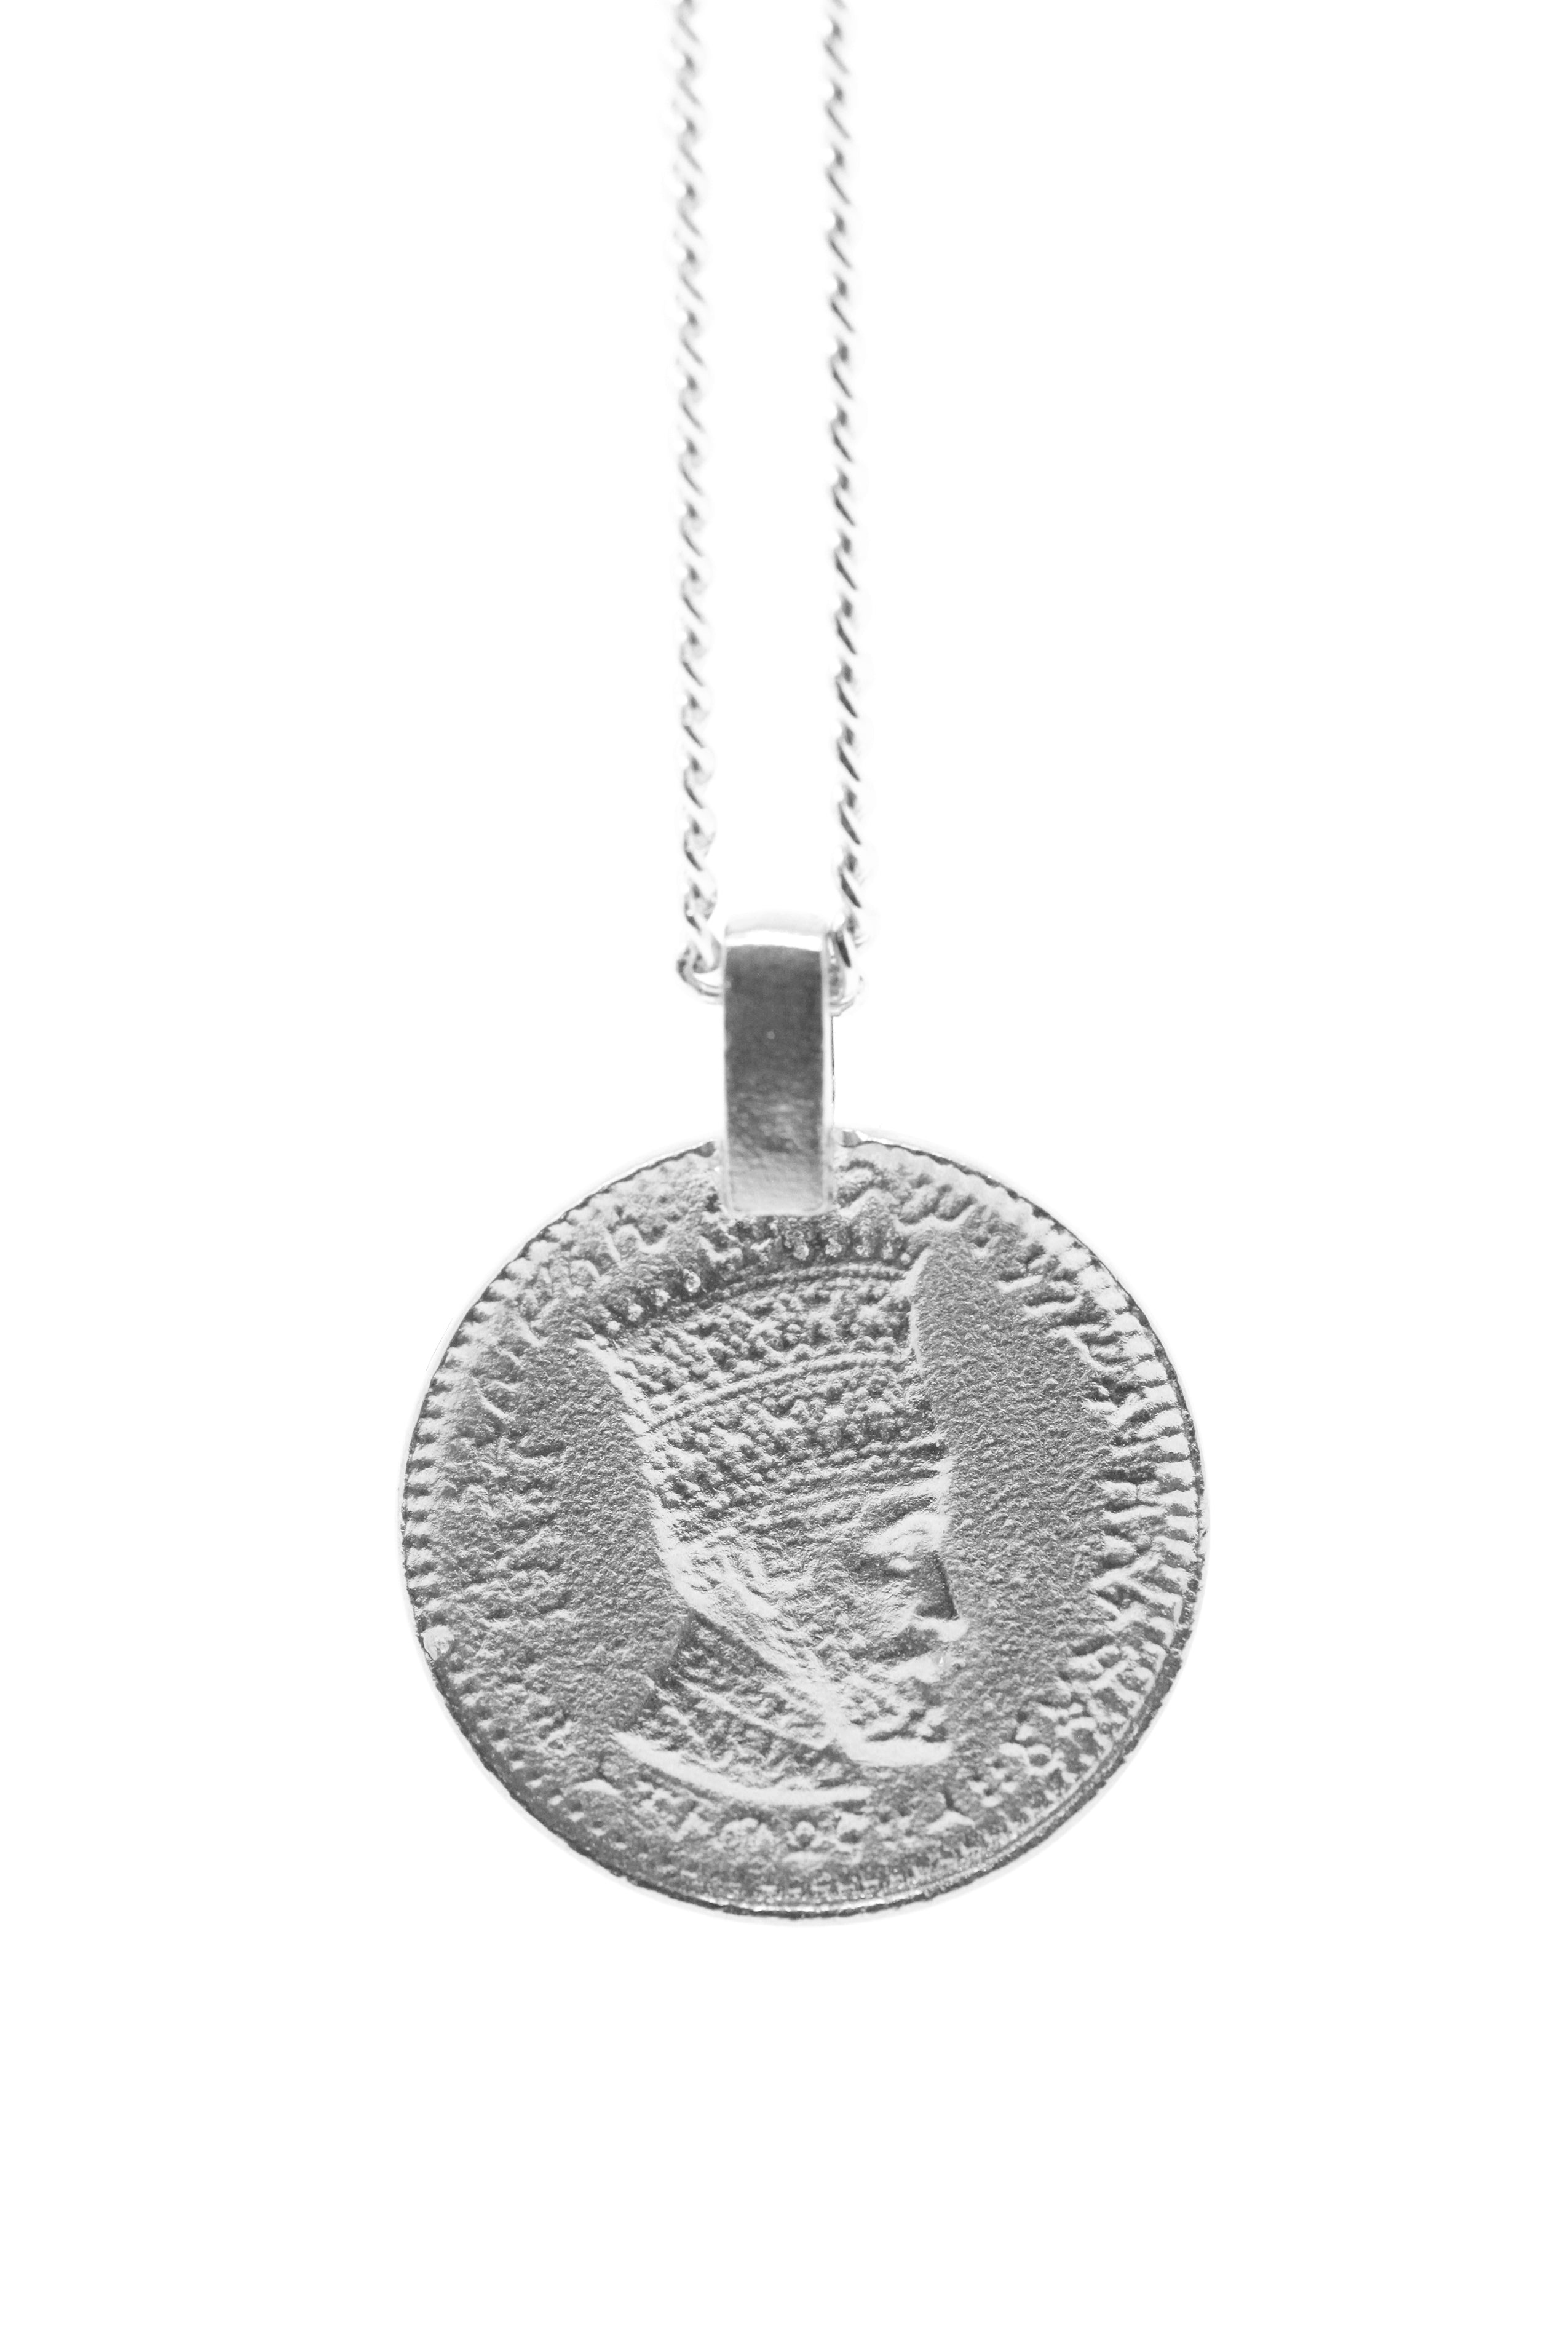 THE HAILE Selassie Coin Necklace Sterling Silver